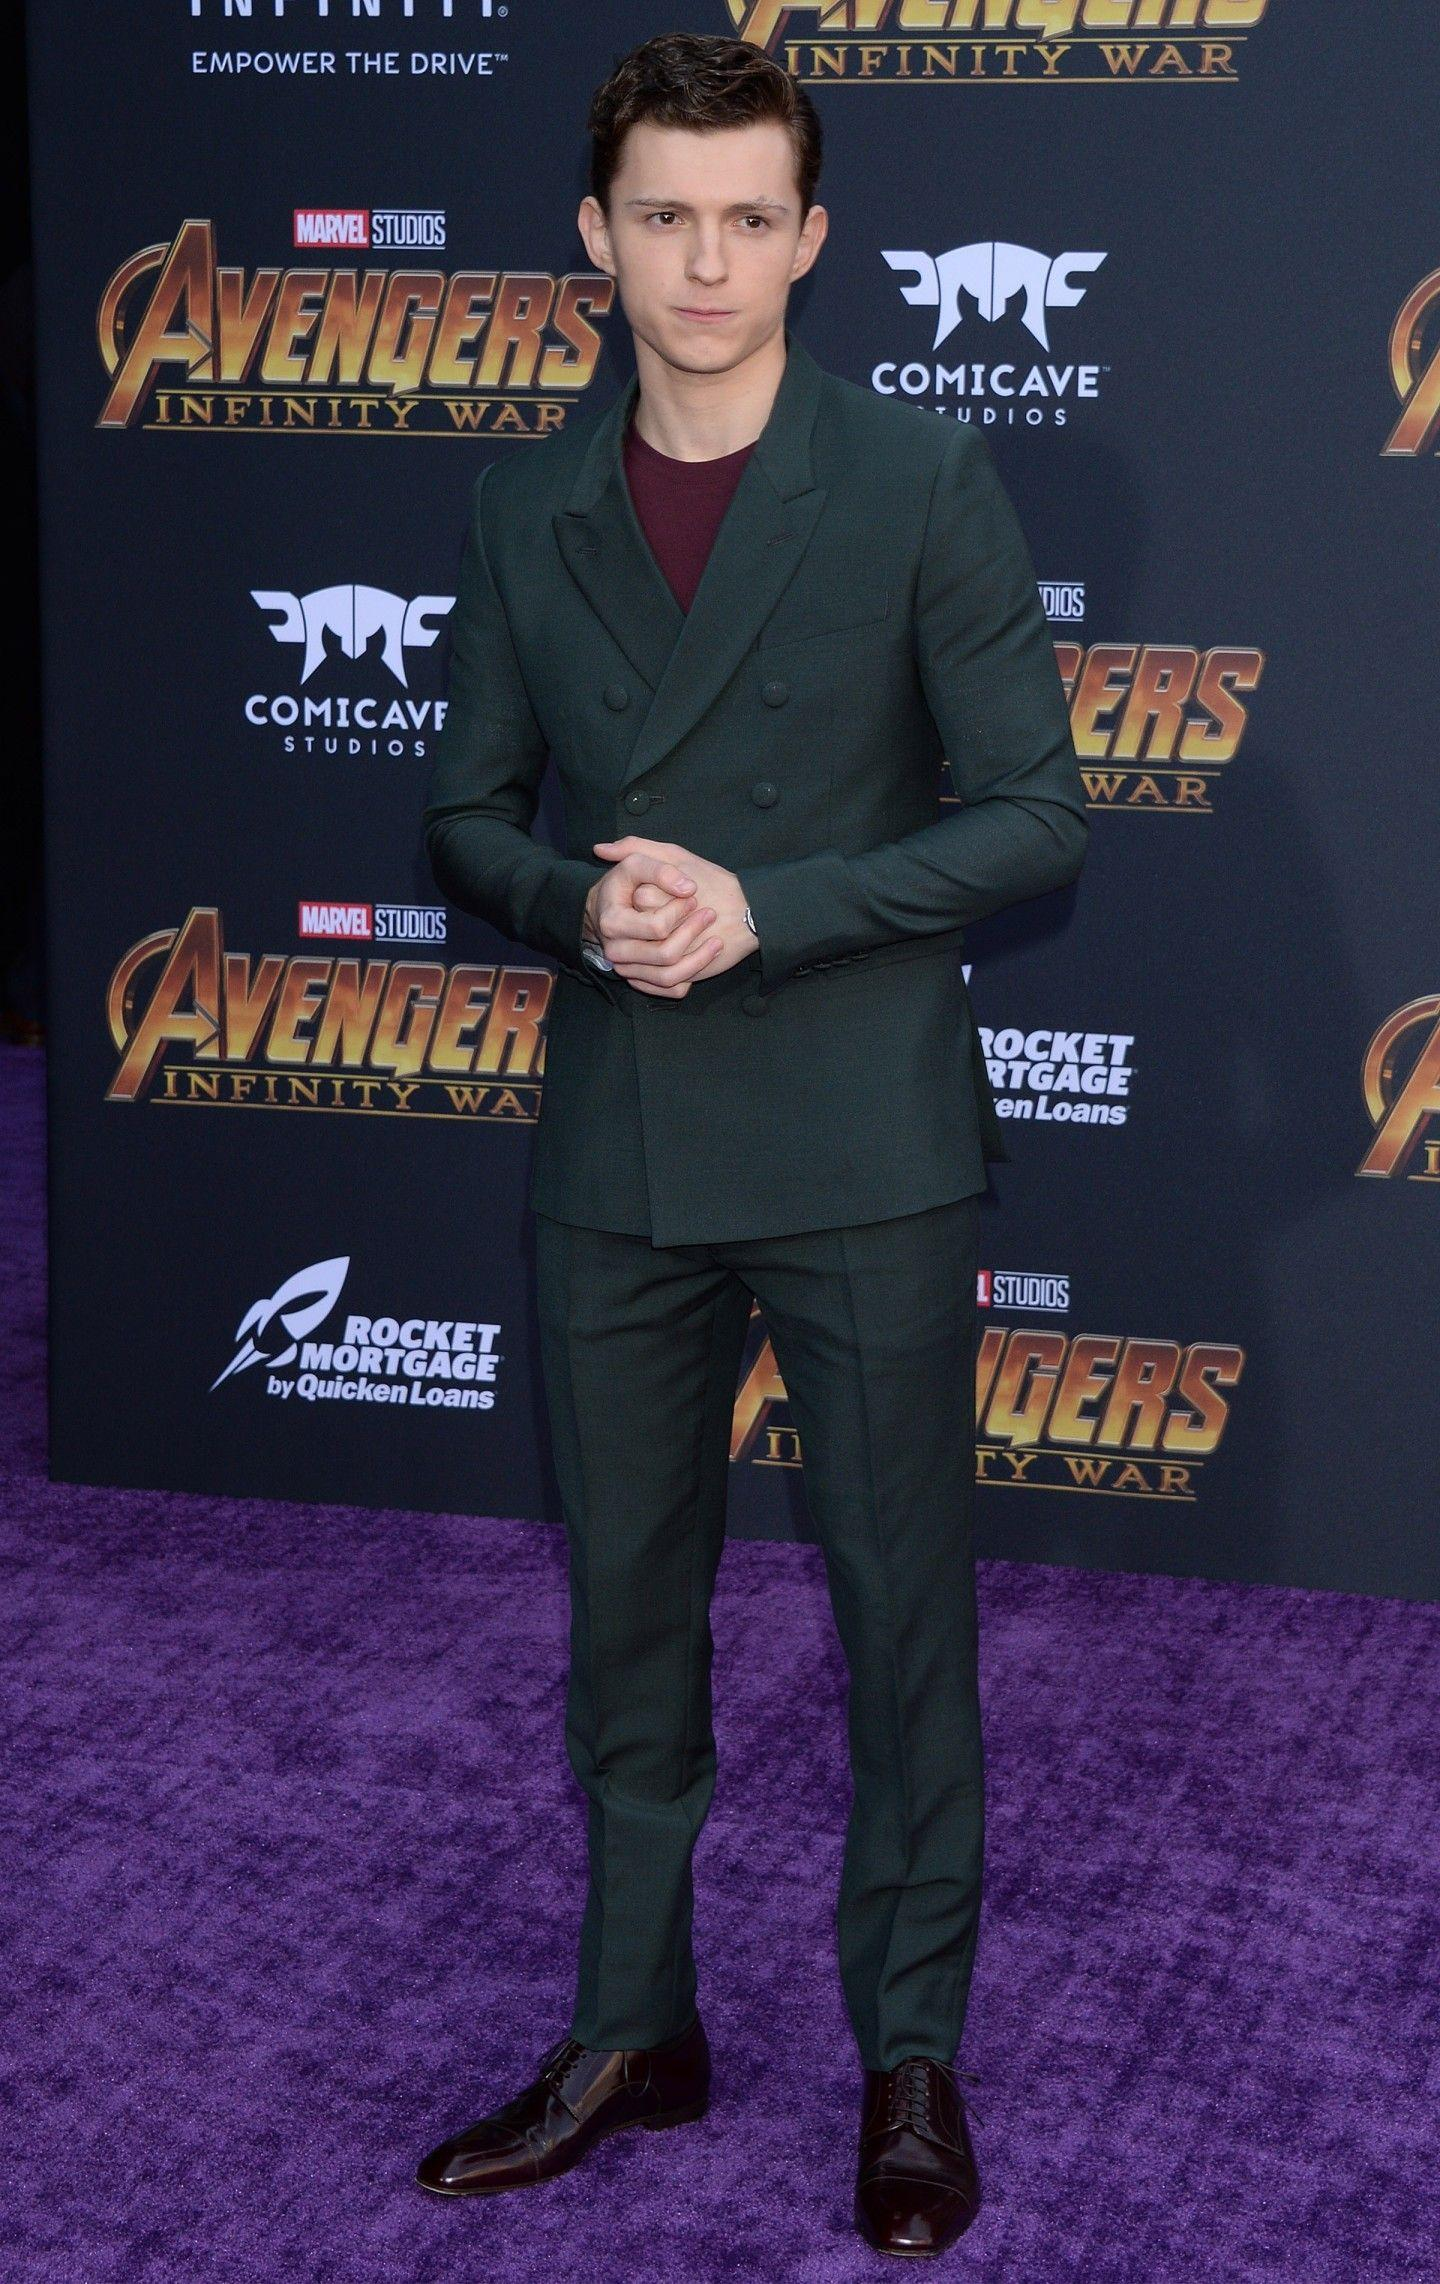 Tom Holland At Disney and Marvel's Avengers Infinity War Premiere